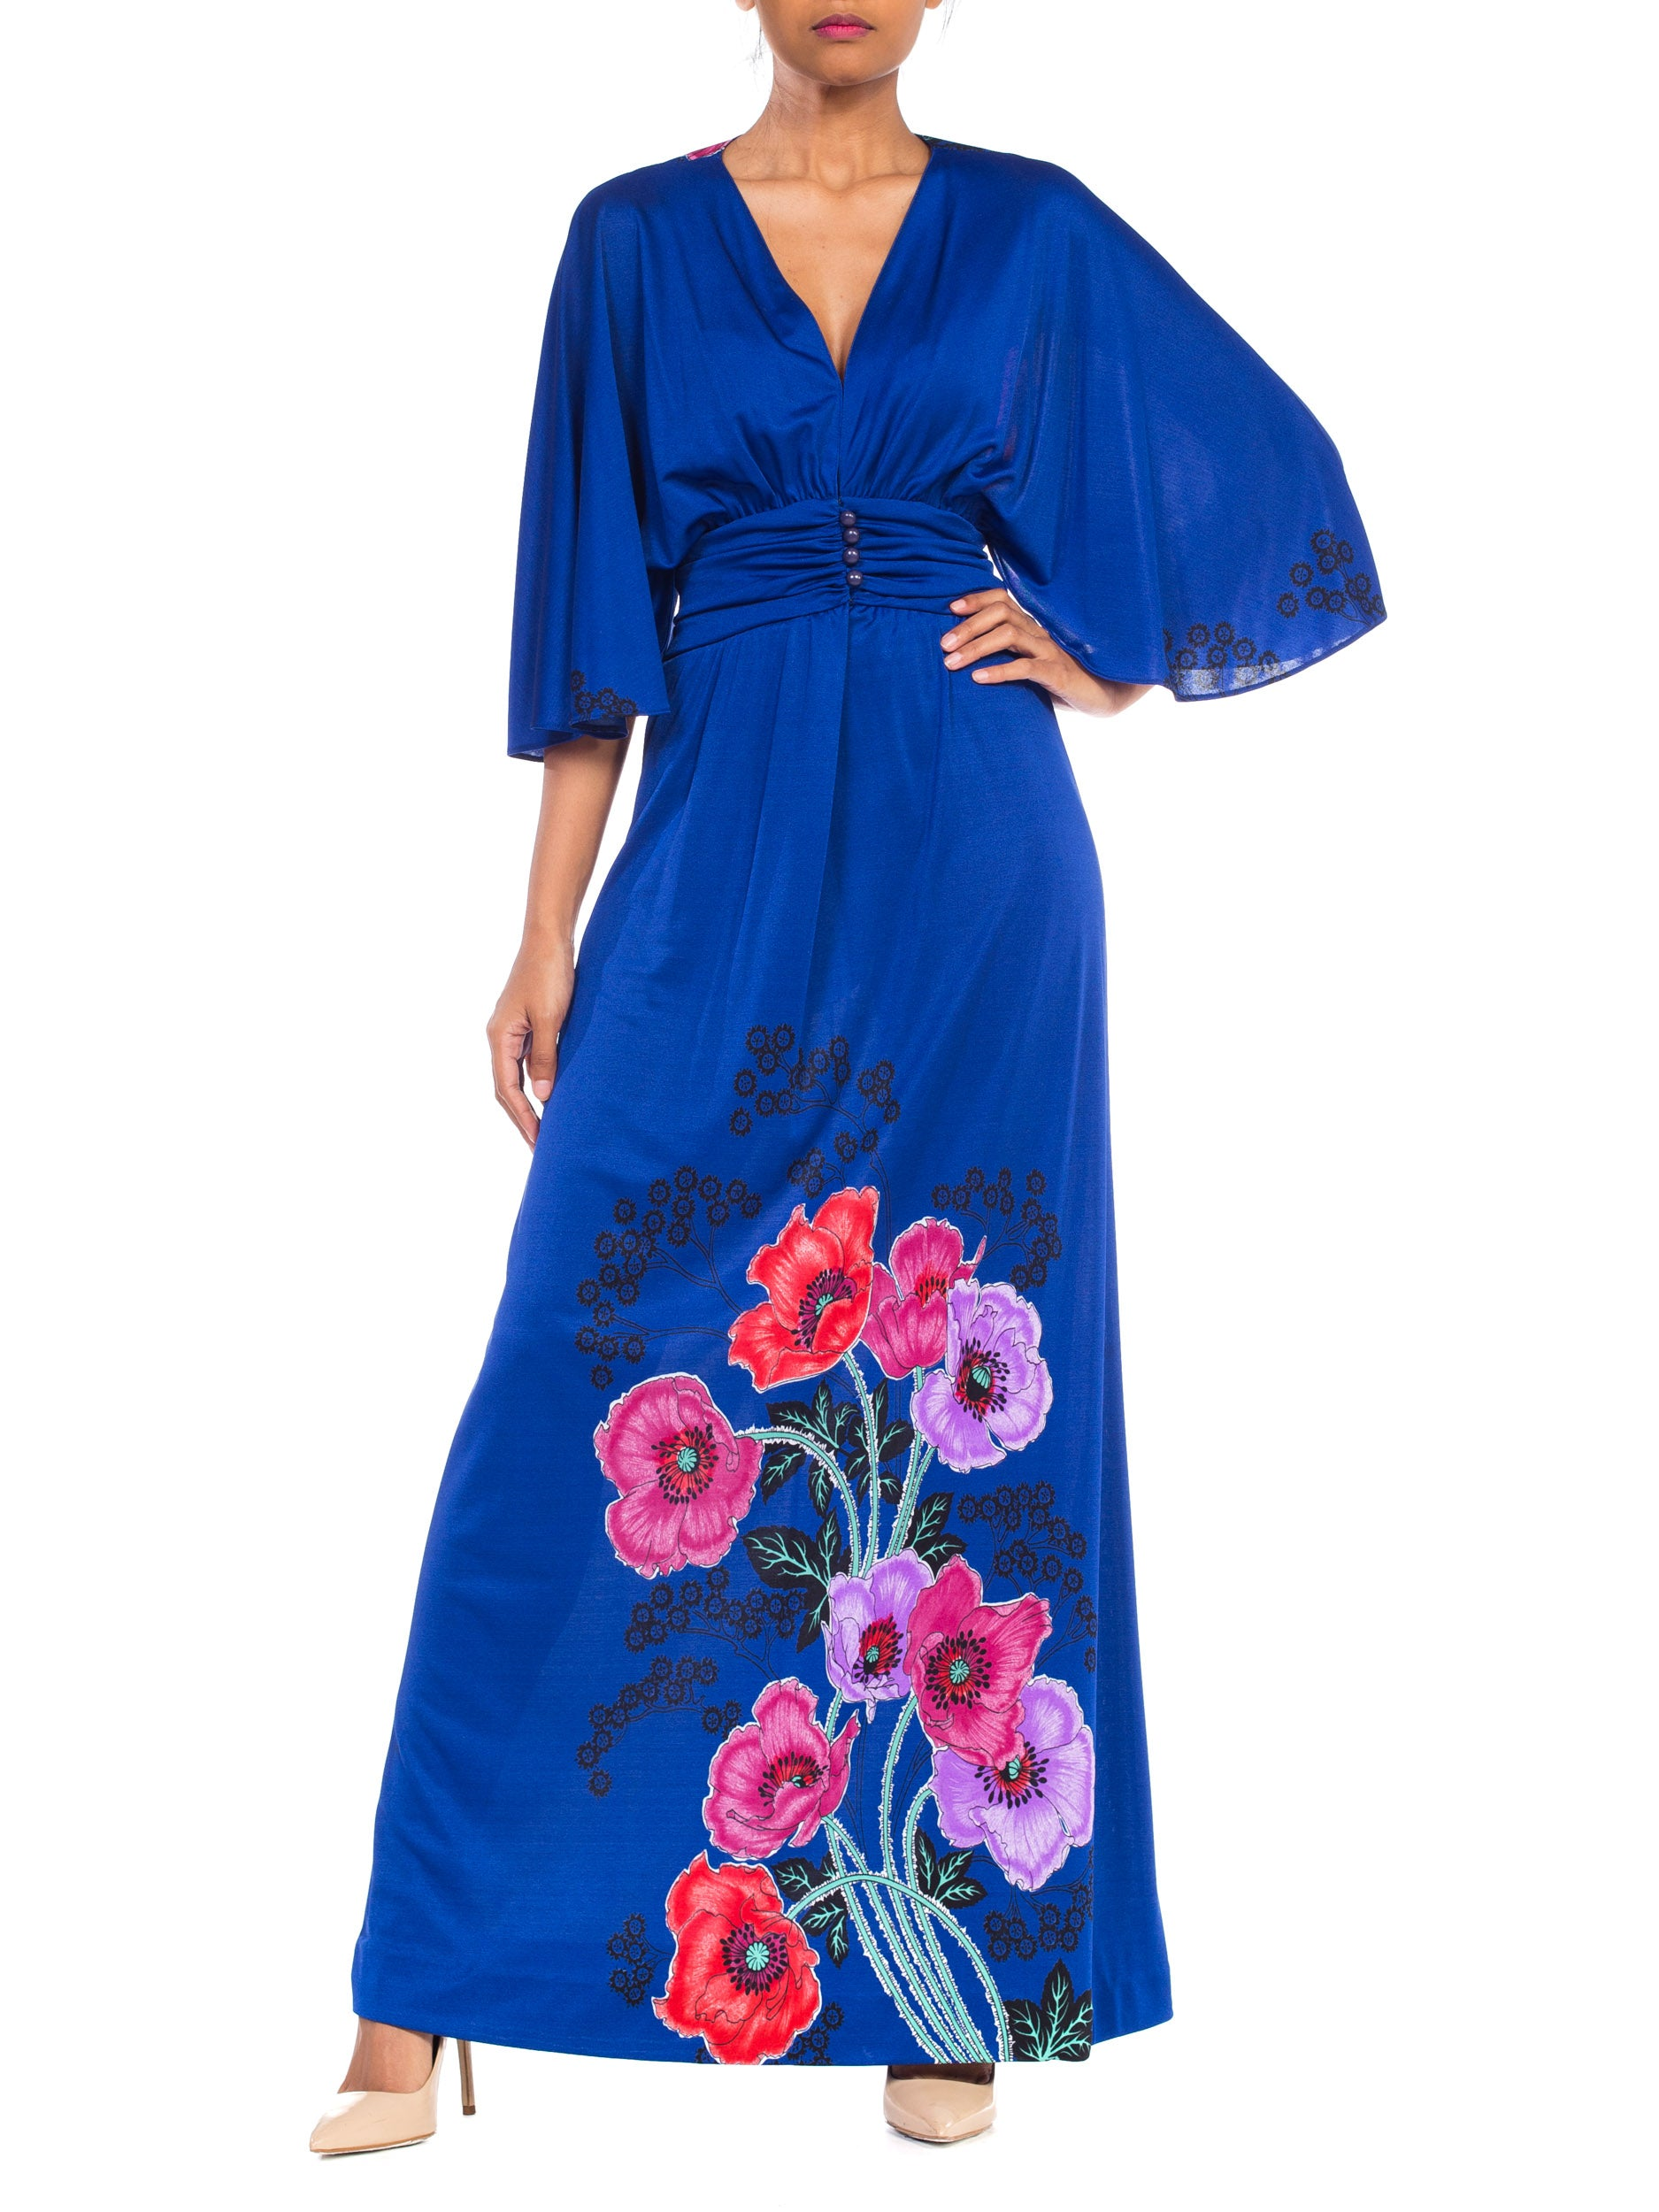 1970s Slinky Jersey Giorgio Beverly Hills Blue Floral Disco Gown